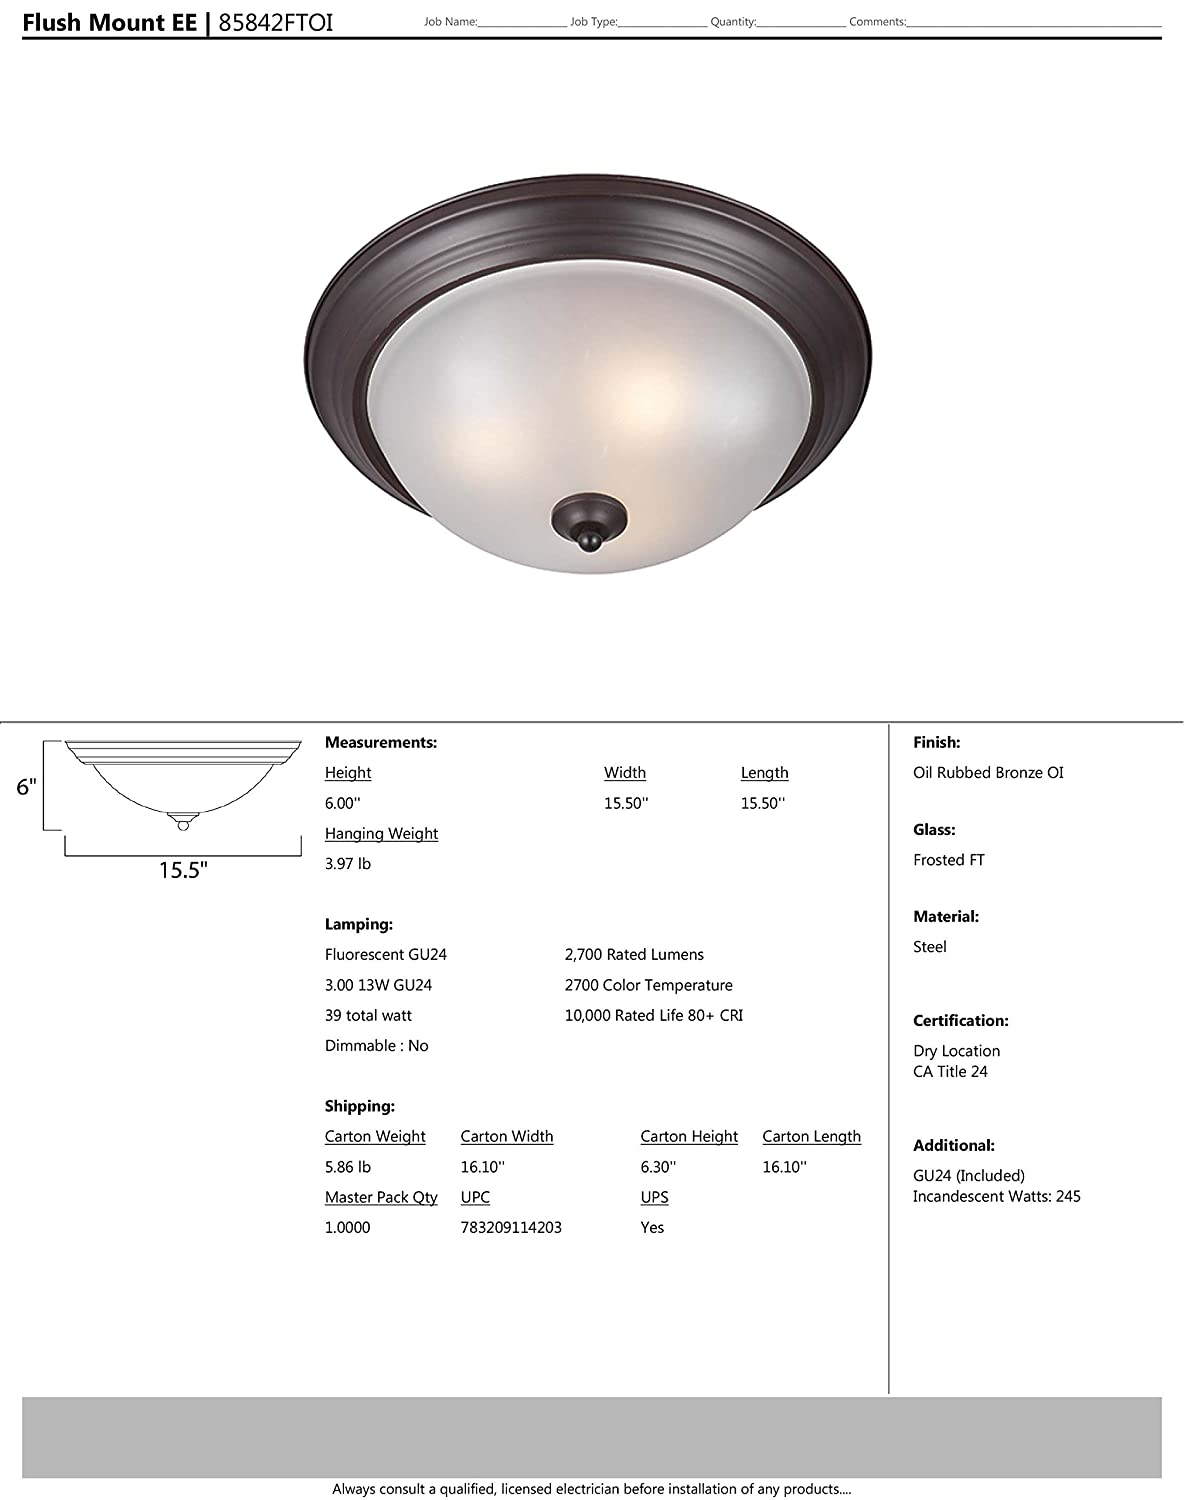 Glass Shade Material 1355 Rated Lumens Wet Safety Rating 18W Max. Oil Rubbed Bronze Finish GU24 Fluorescent Fluorescent Bulb Maxim 85842FTOI Flush Mount EE 3-Light Flush Mount 2700K Color Temp Frosted Glass